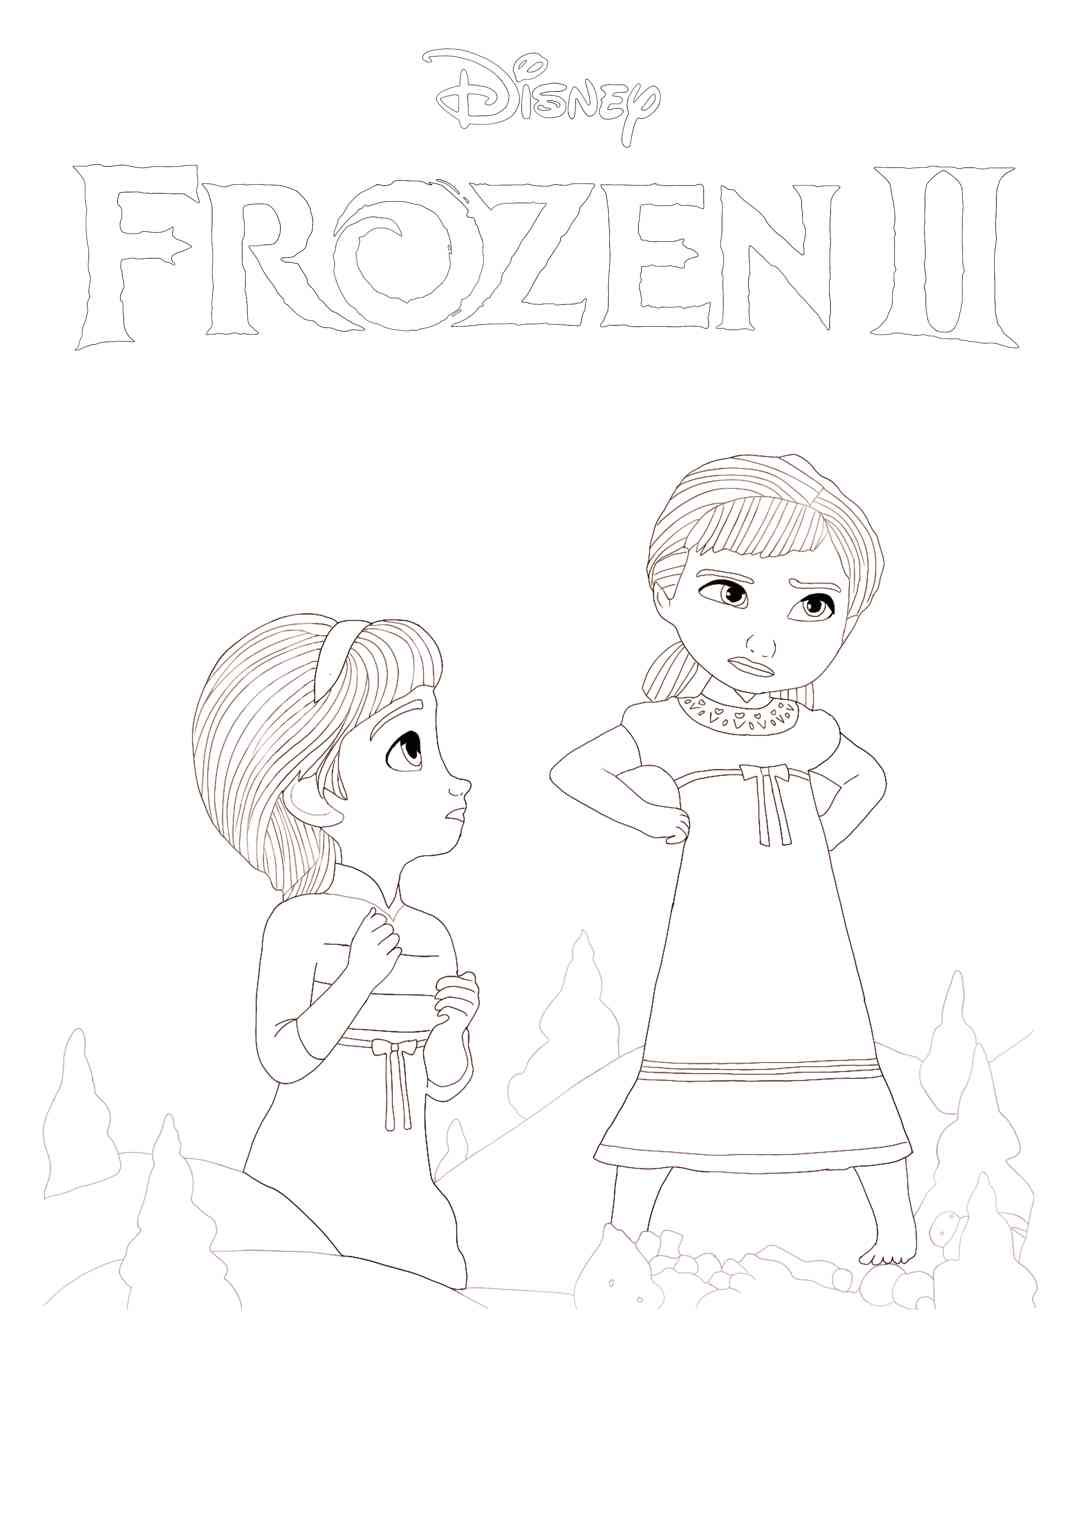 Free Frozen 2 Young Anna And Elsa Coloring Page Print Or Download Frozen Ii Coloring Pictures Prin Elsa Coloring Pages Elsa Coloring Disney Coloring Sheets